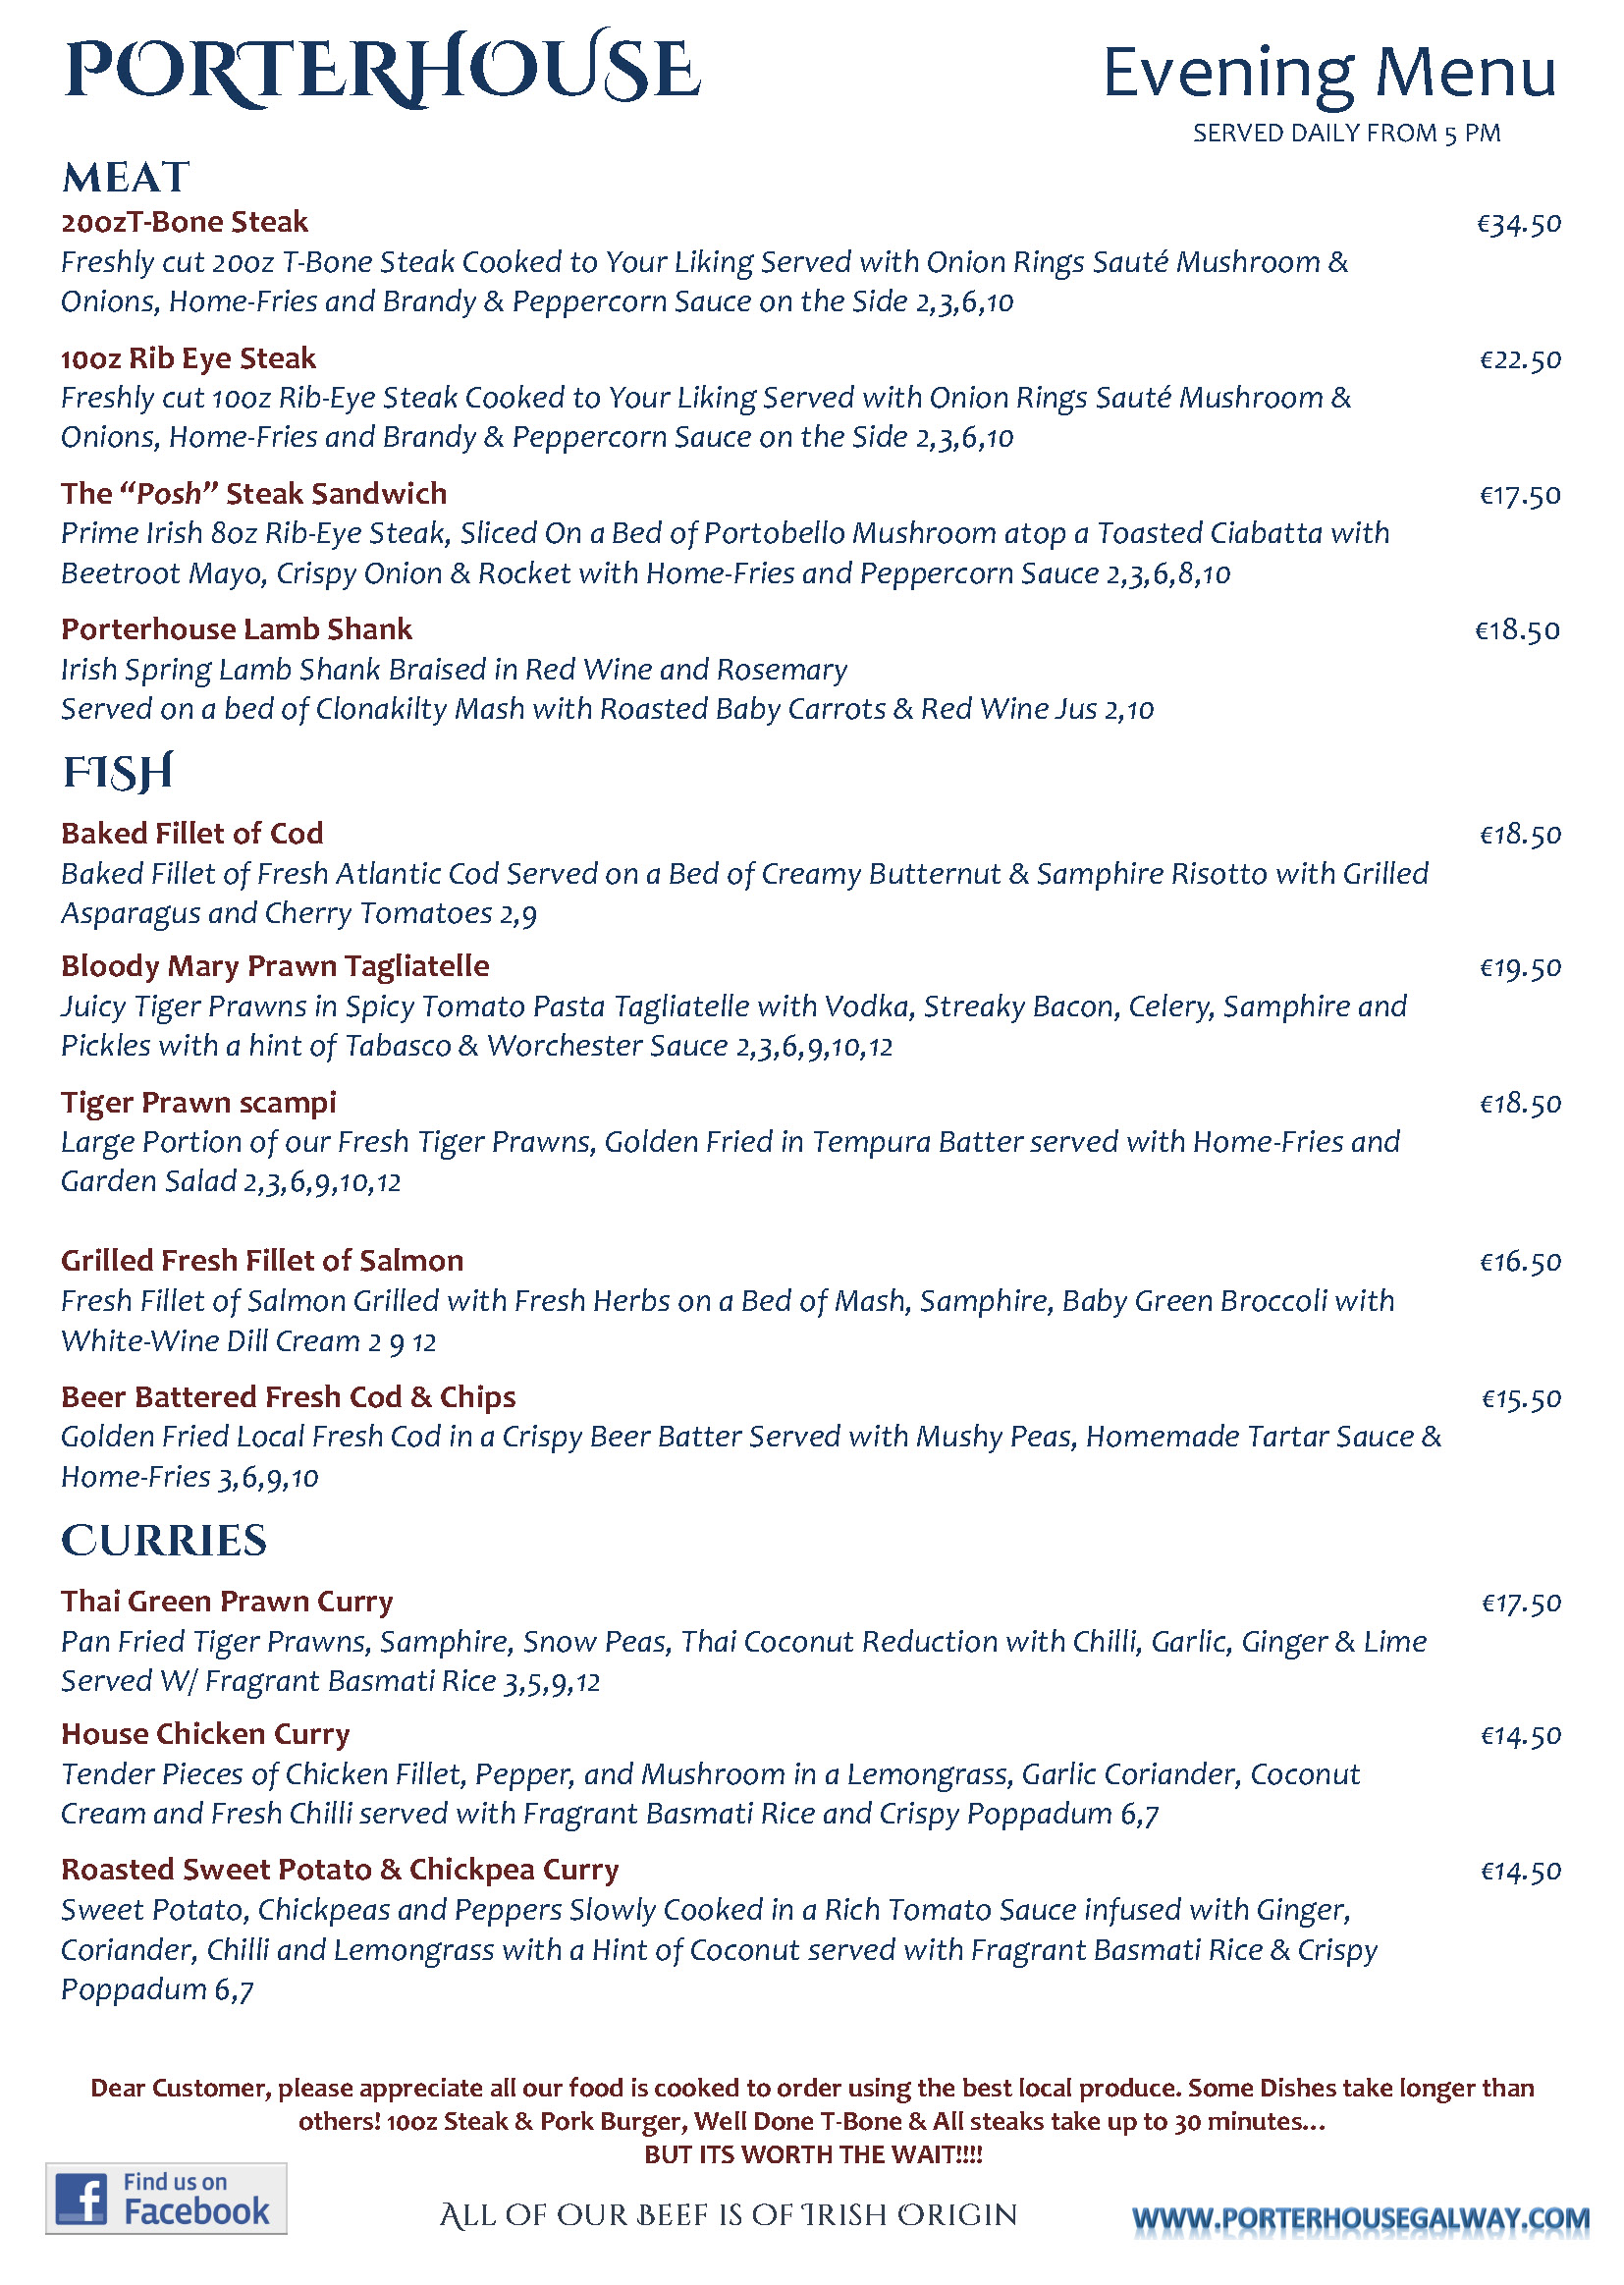 Porterhouse Galway - Evening Menu - Final 19.07.2018_Page_3.jpg